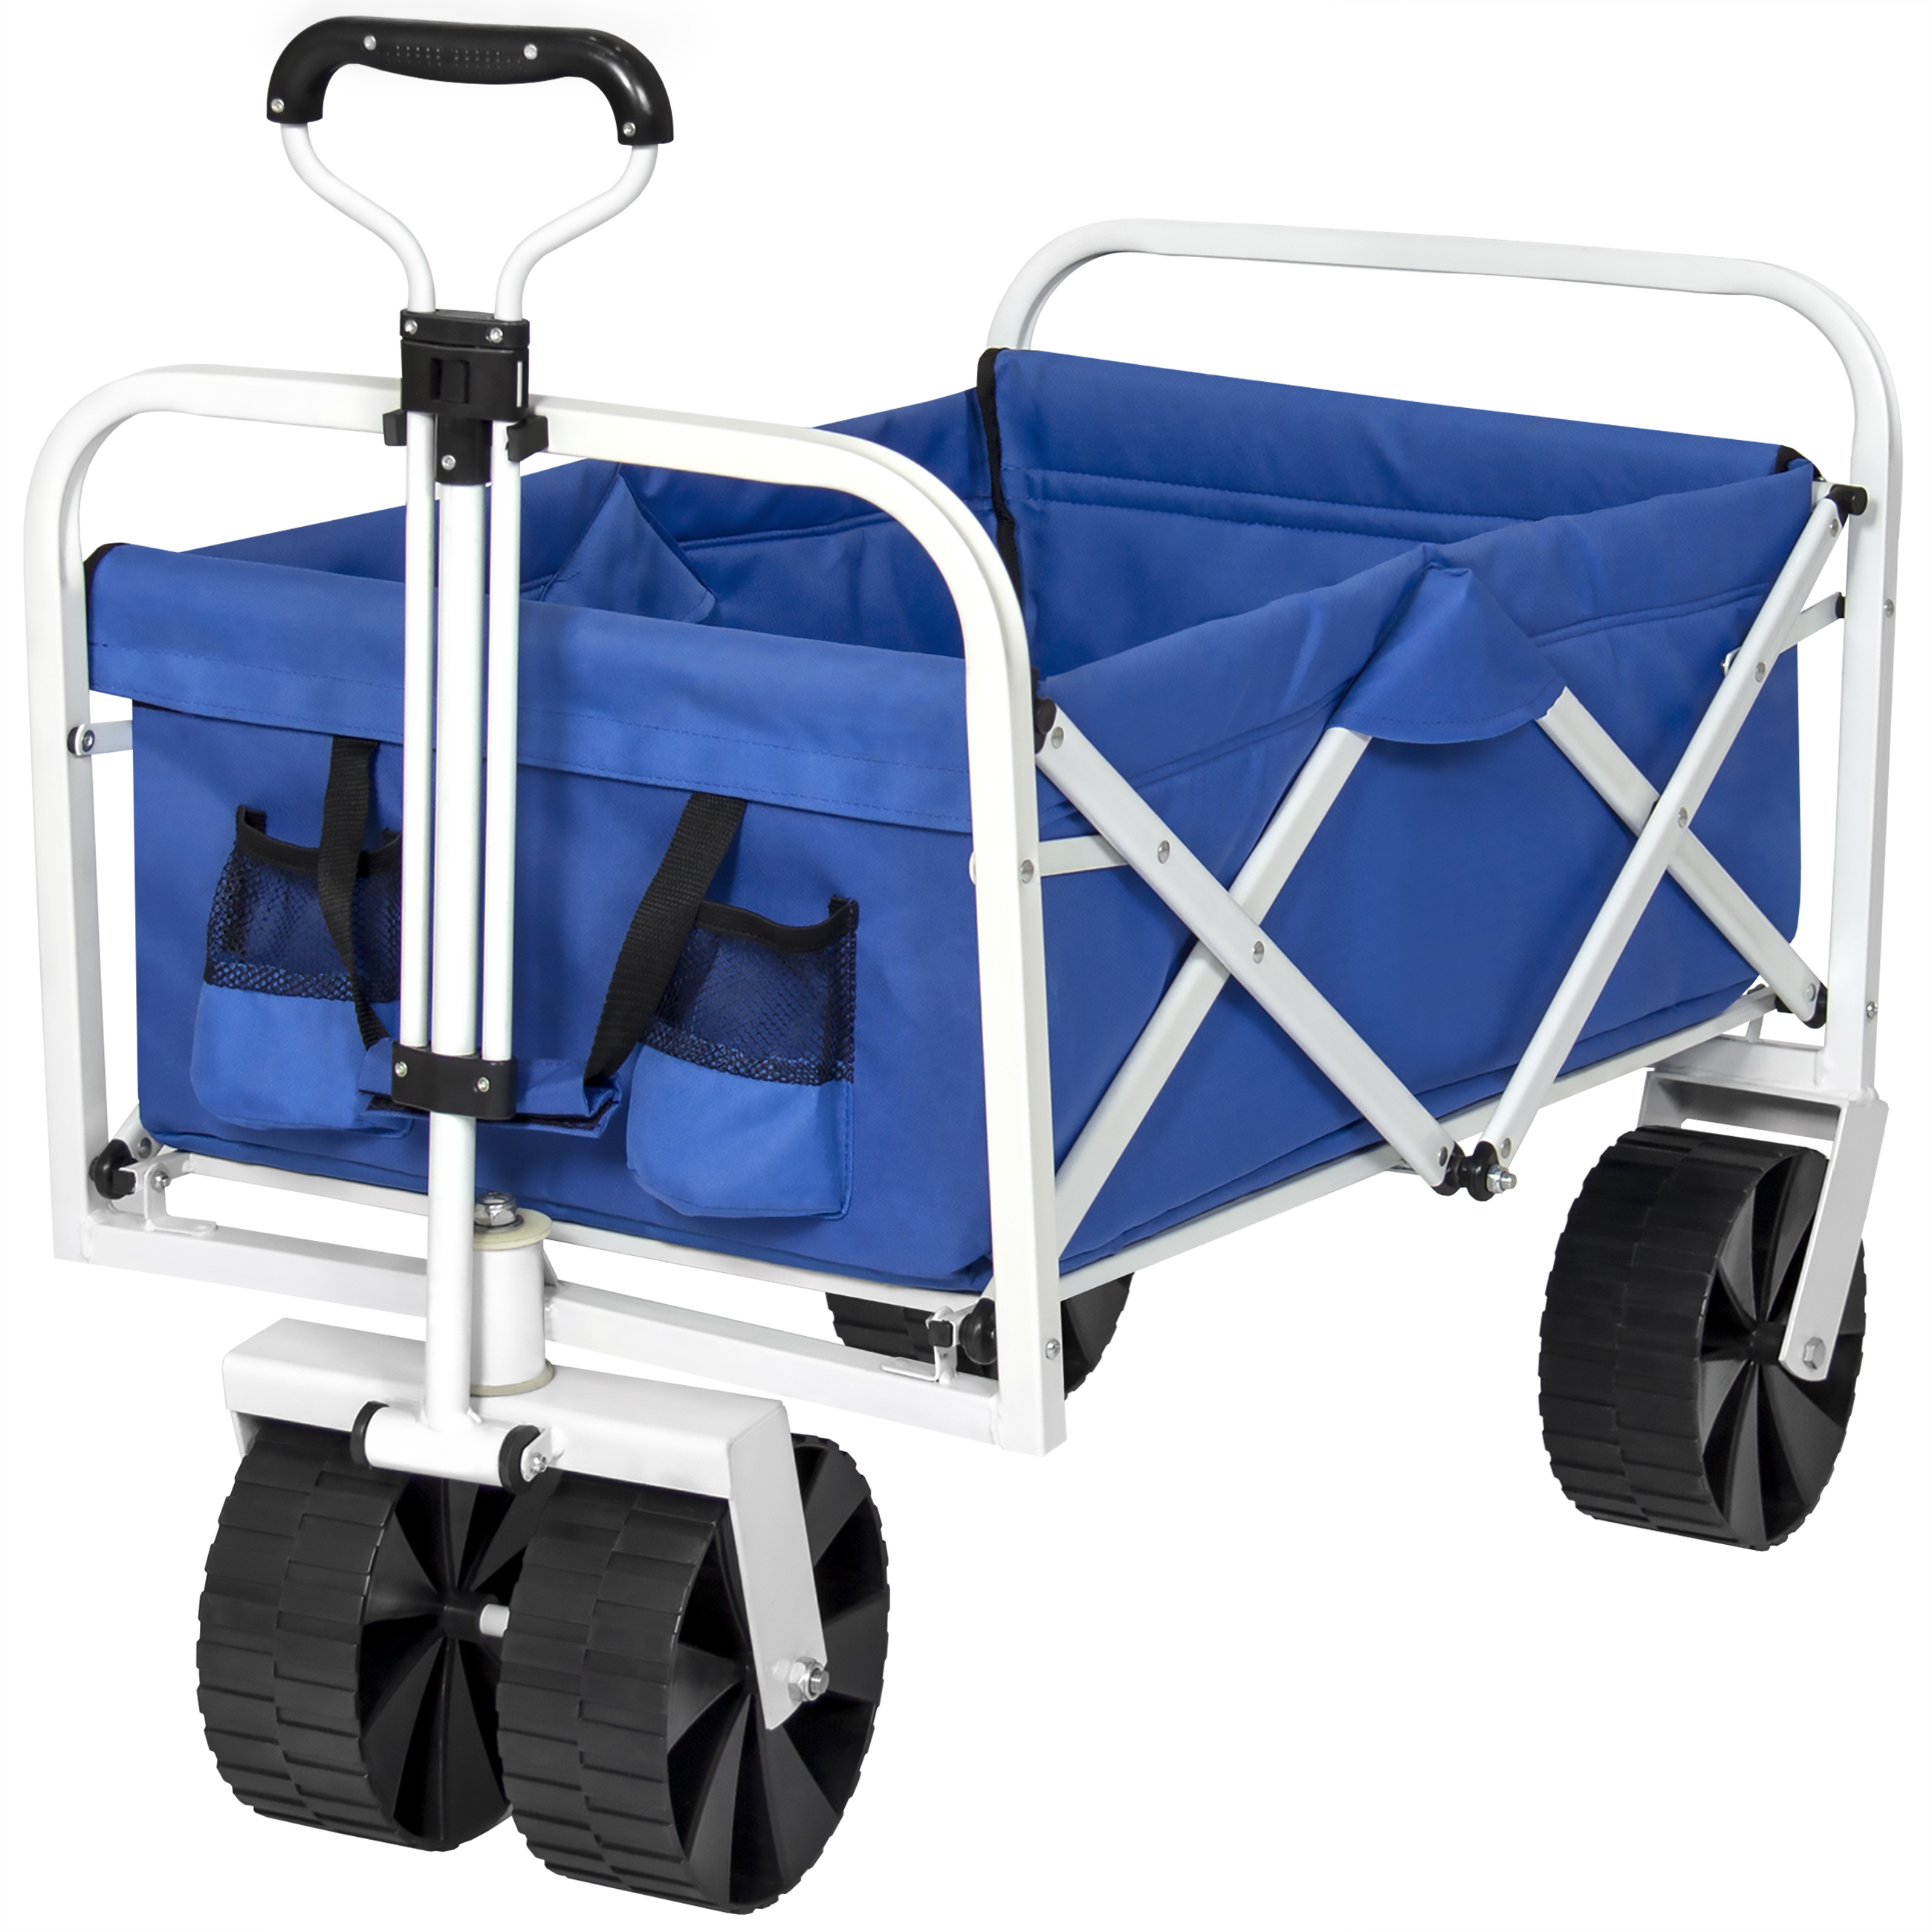 Best Choice Products Folding Collapsible Utility Wagon Cart for Garden, Beach, Yard, Camping, Sports w/ All-Terrain Wheels, Carrying Bag, 150lb Capacity - Blue